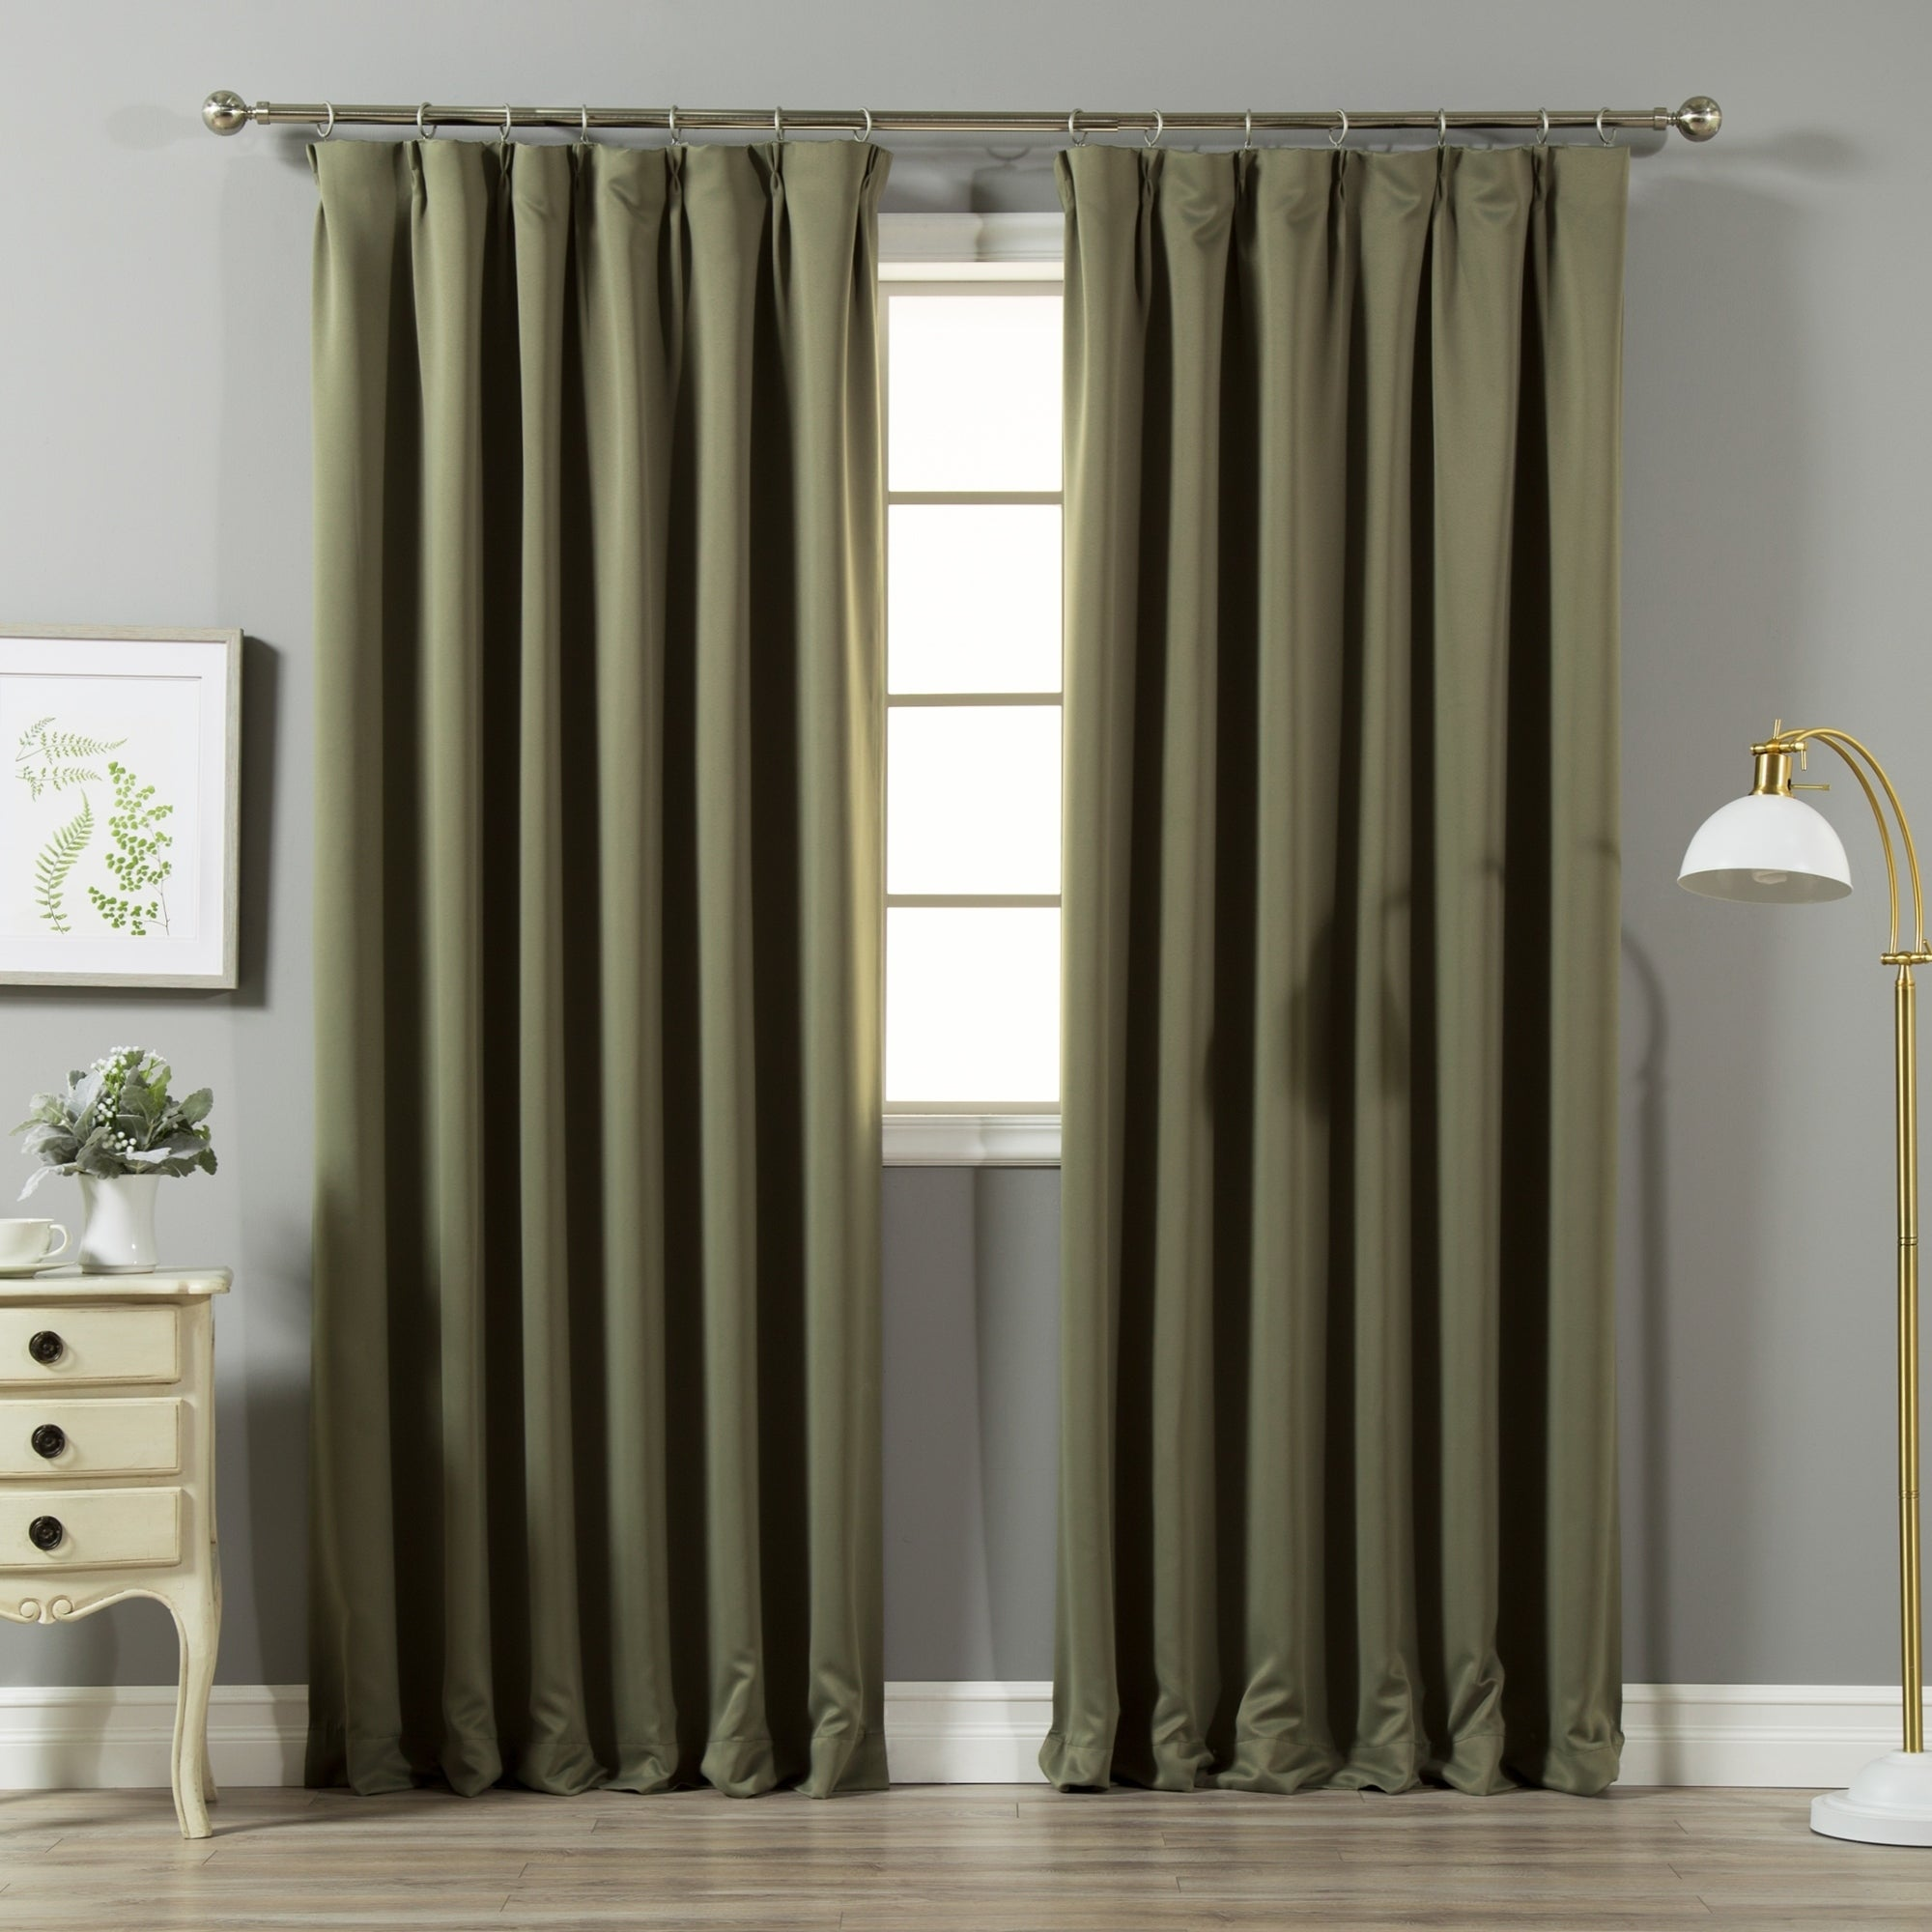 curtain pleated walmart com windsor pleat drapes traverse ip panel rod for pinch